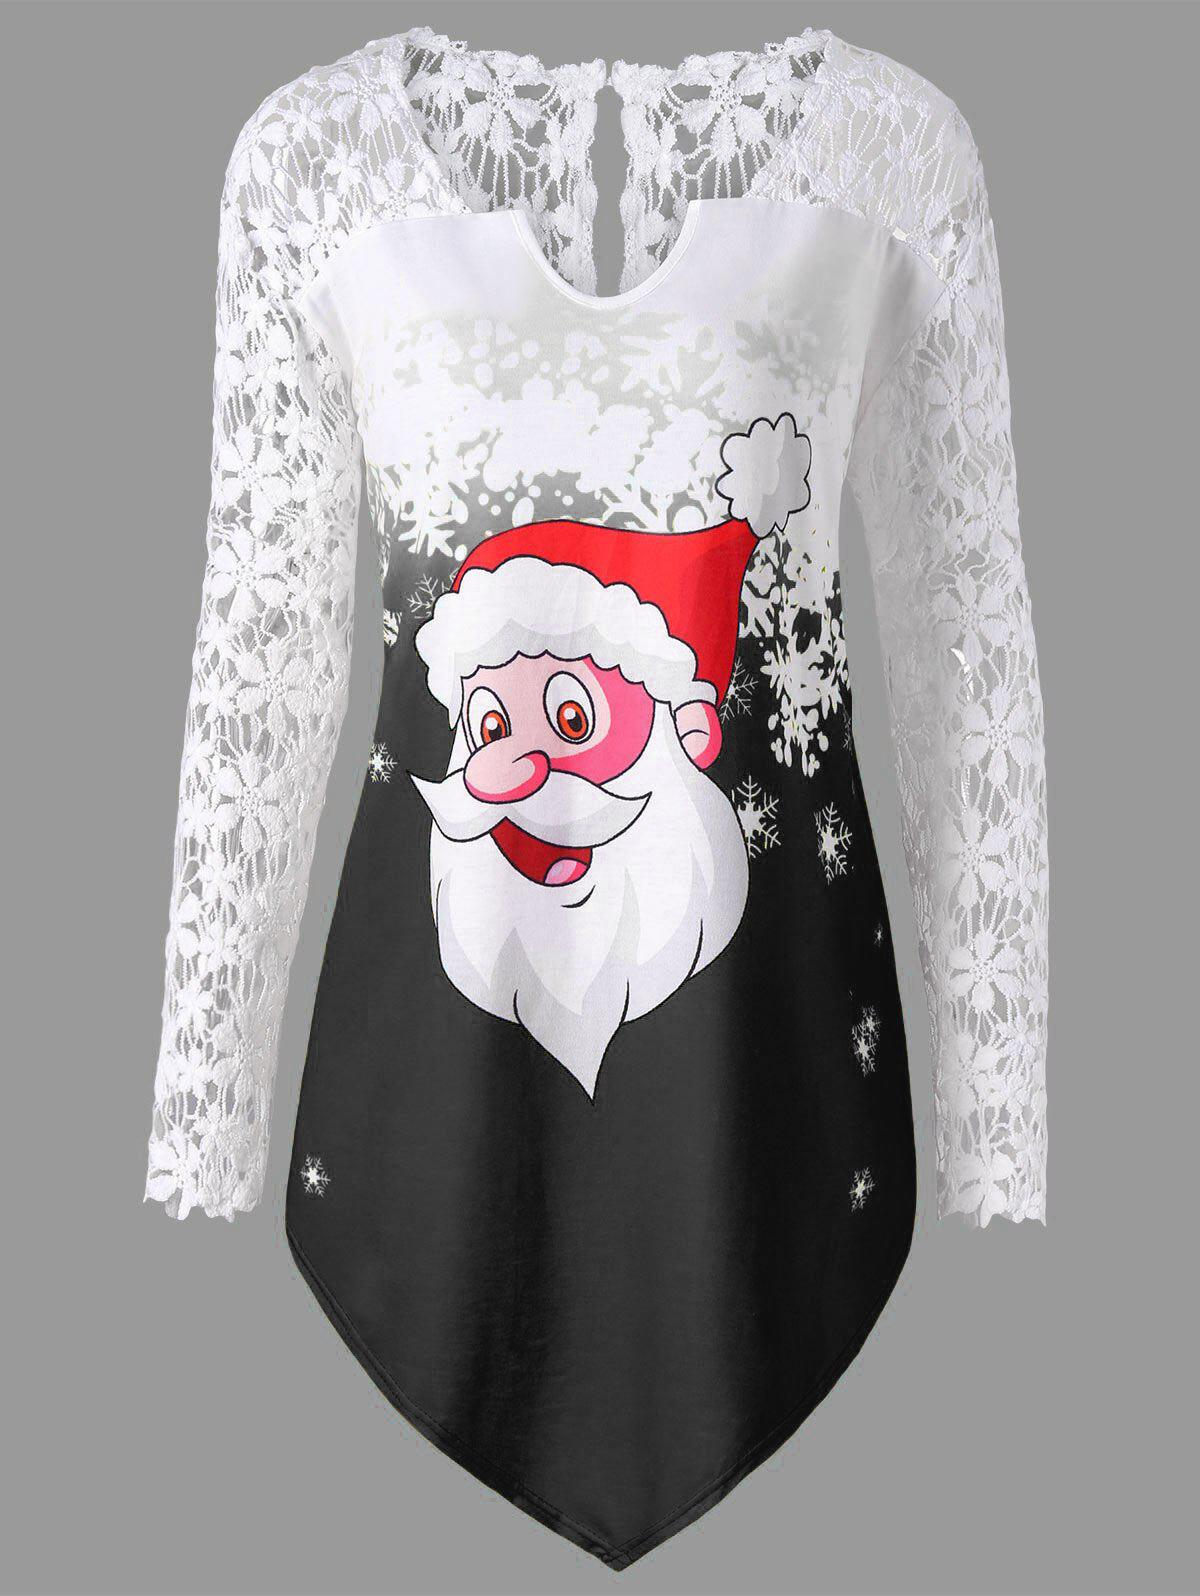 Cheap Christmas Plus Size Santa Claus Lace Trim T-shirt